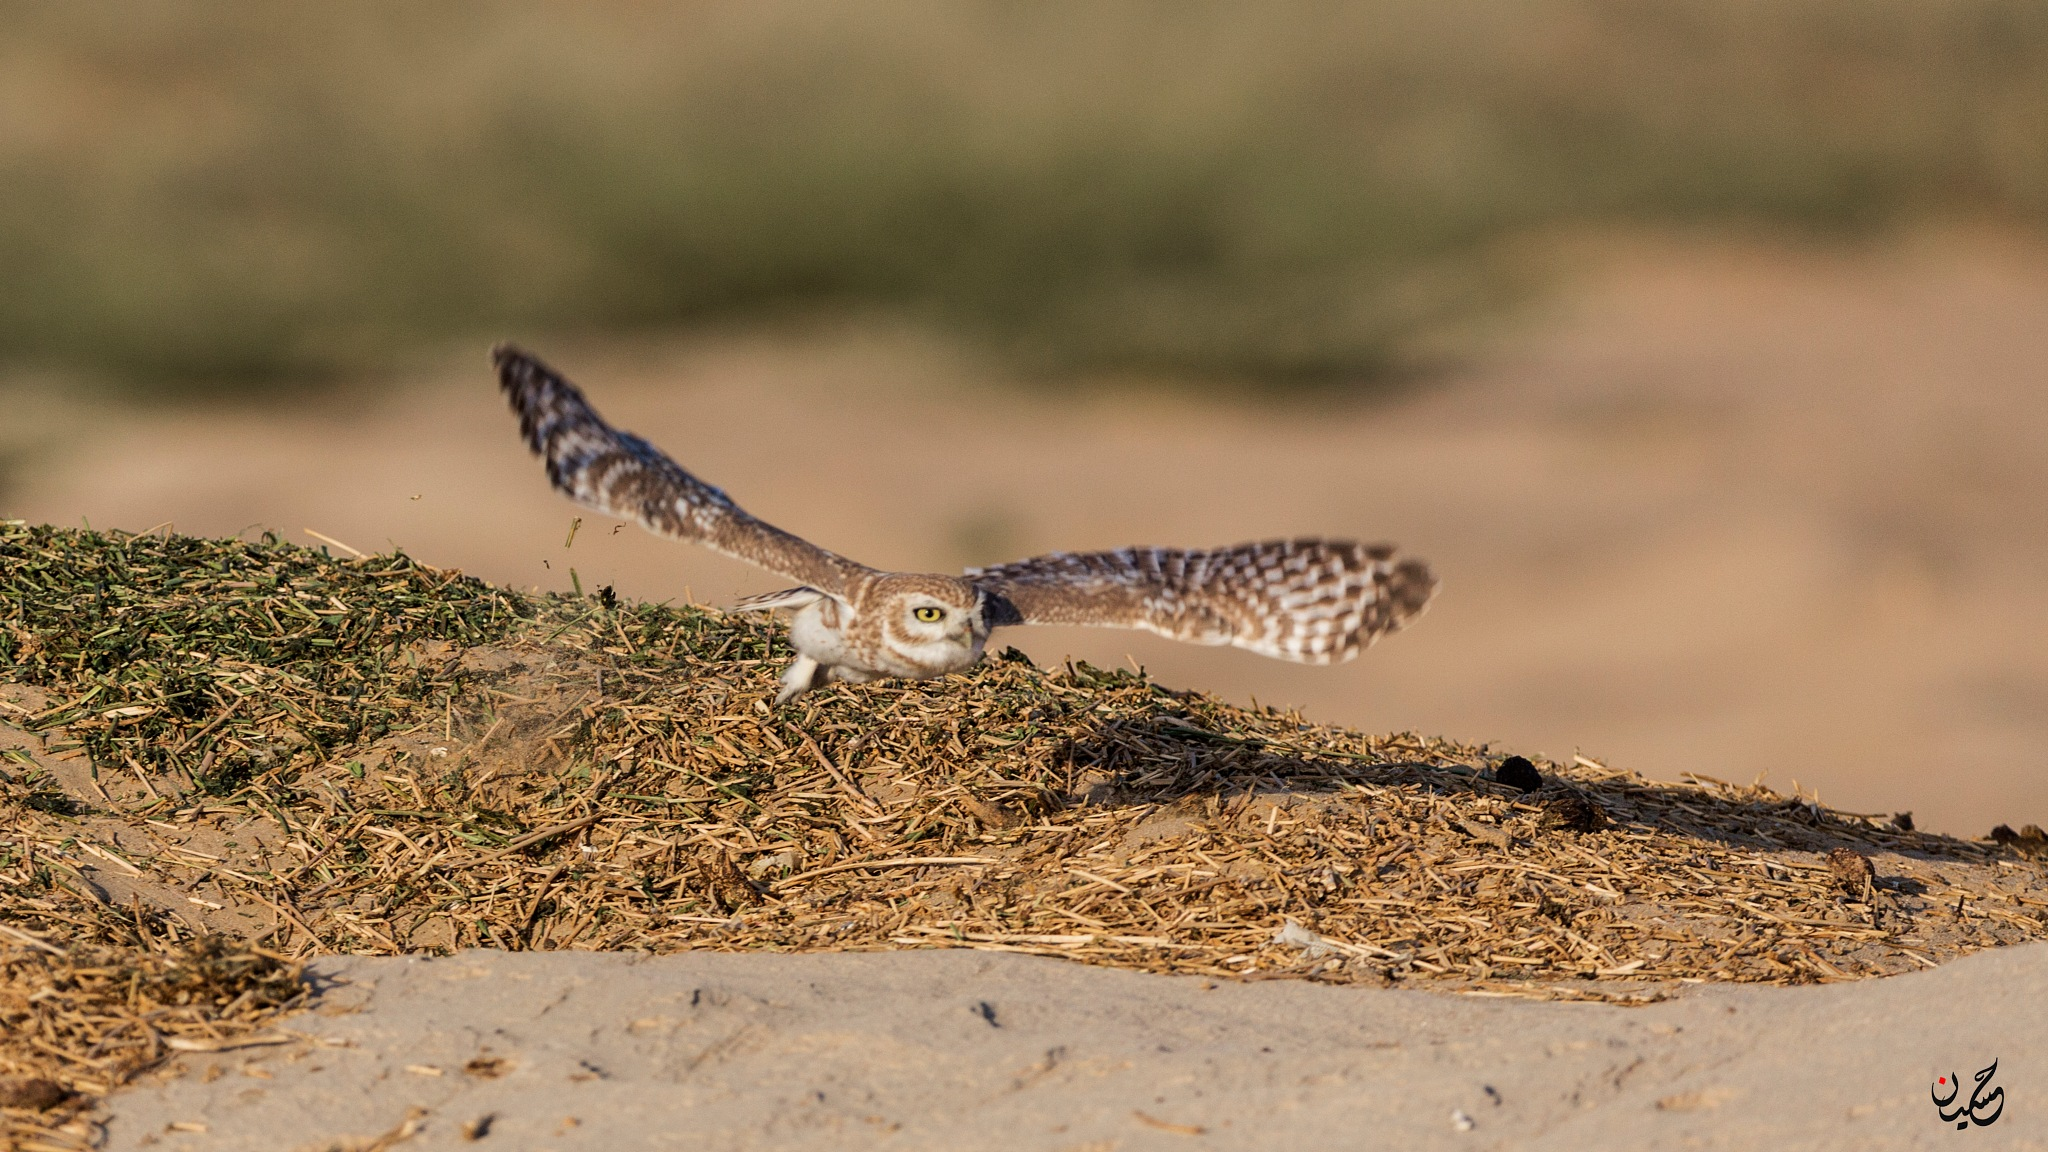 Owl in flight by Hussain Nalwala